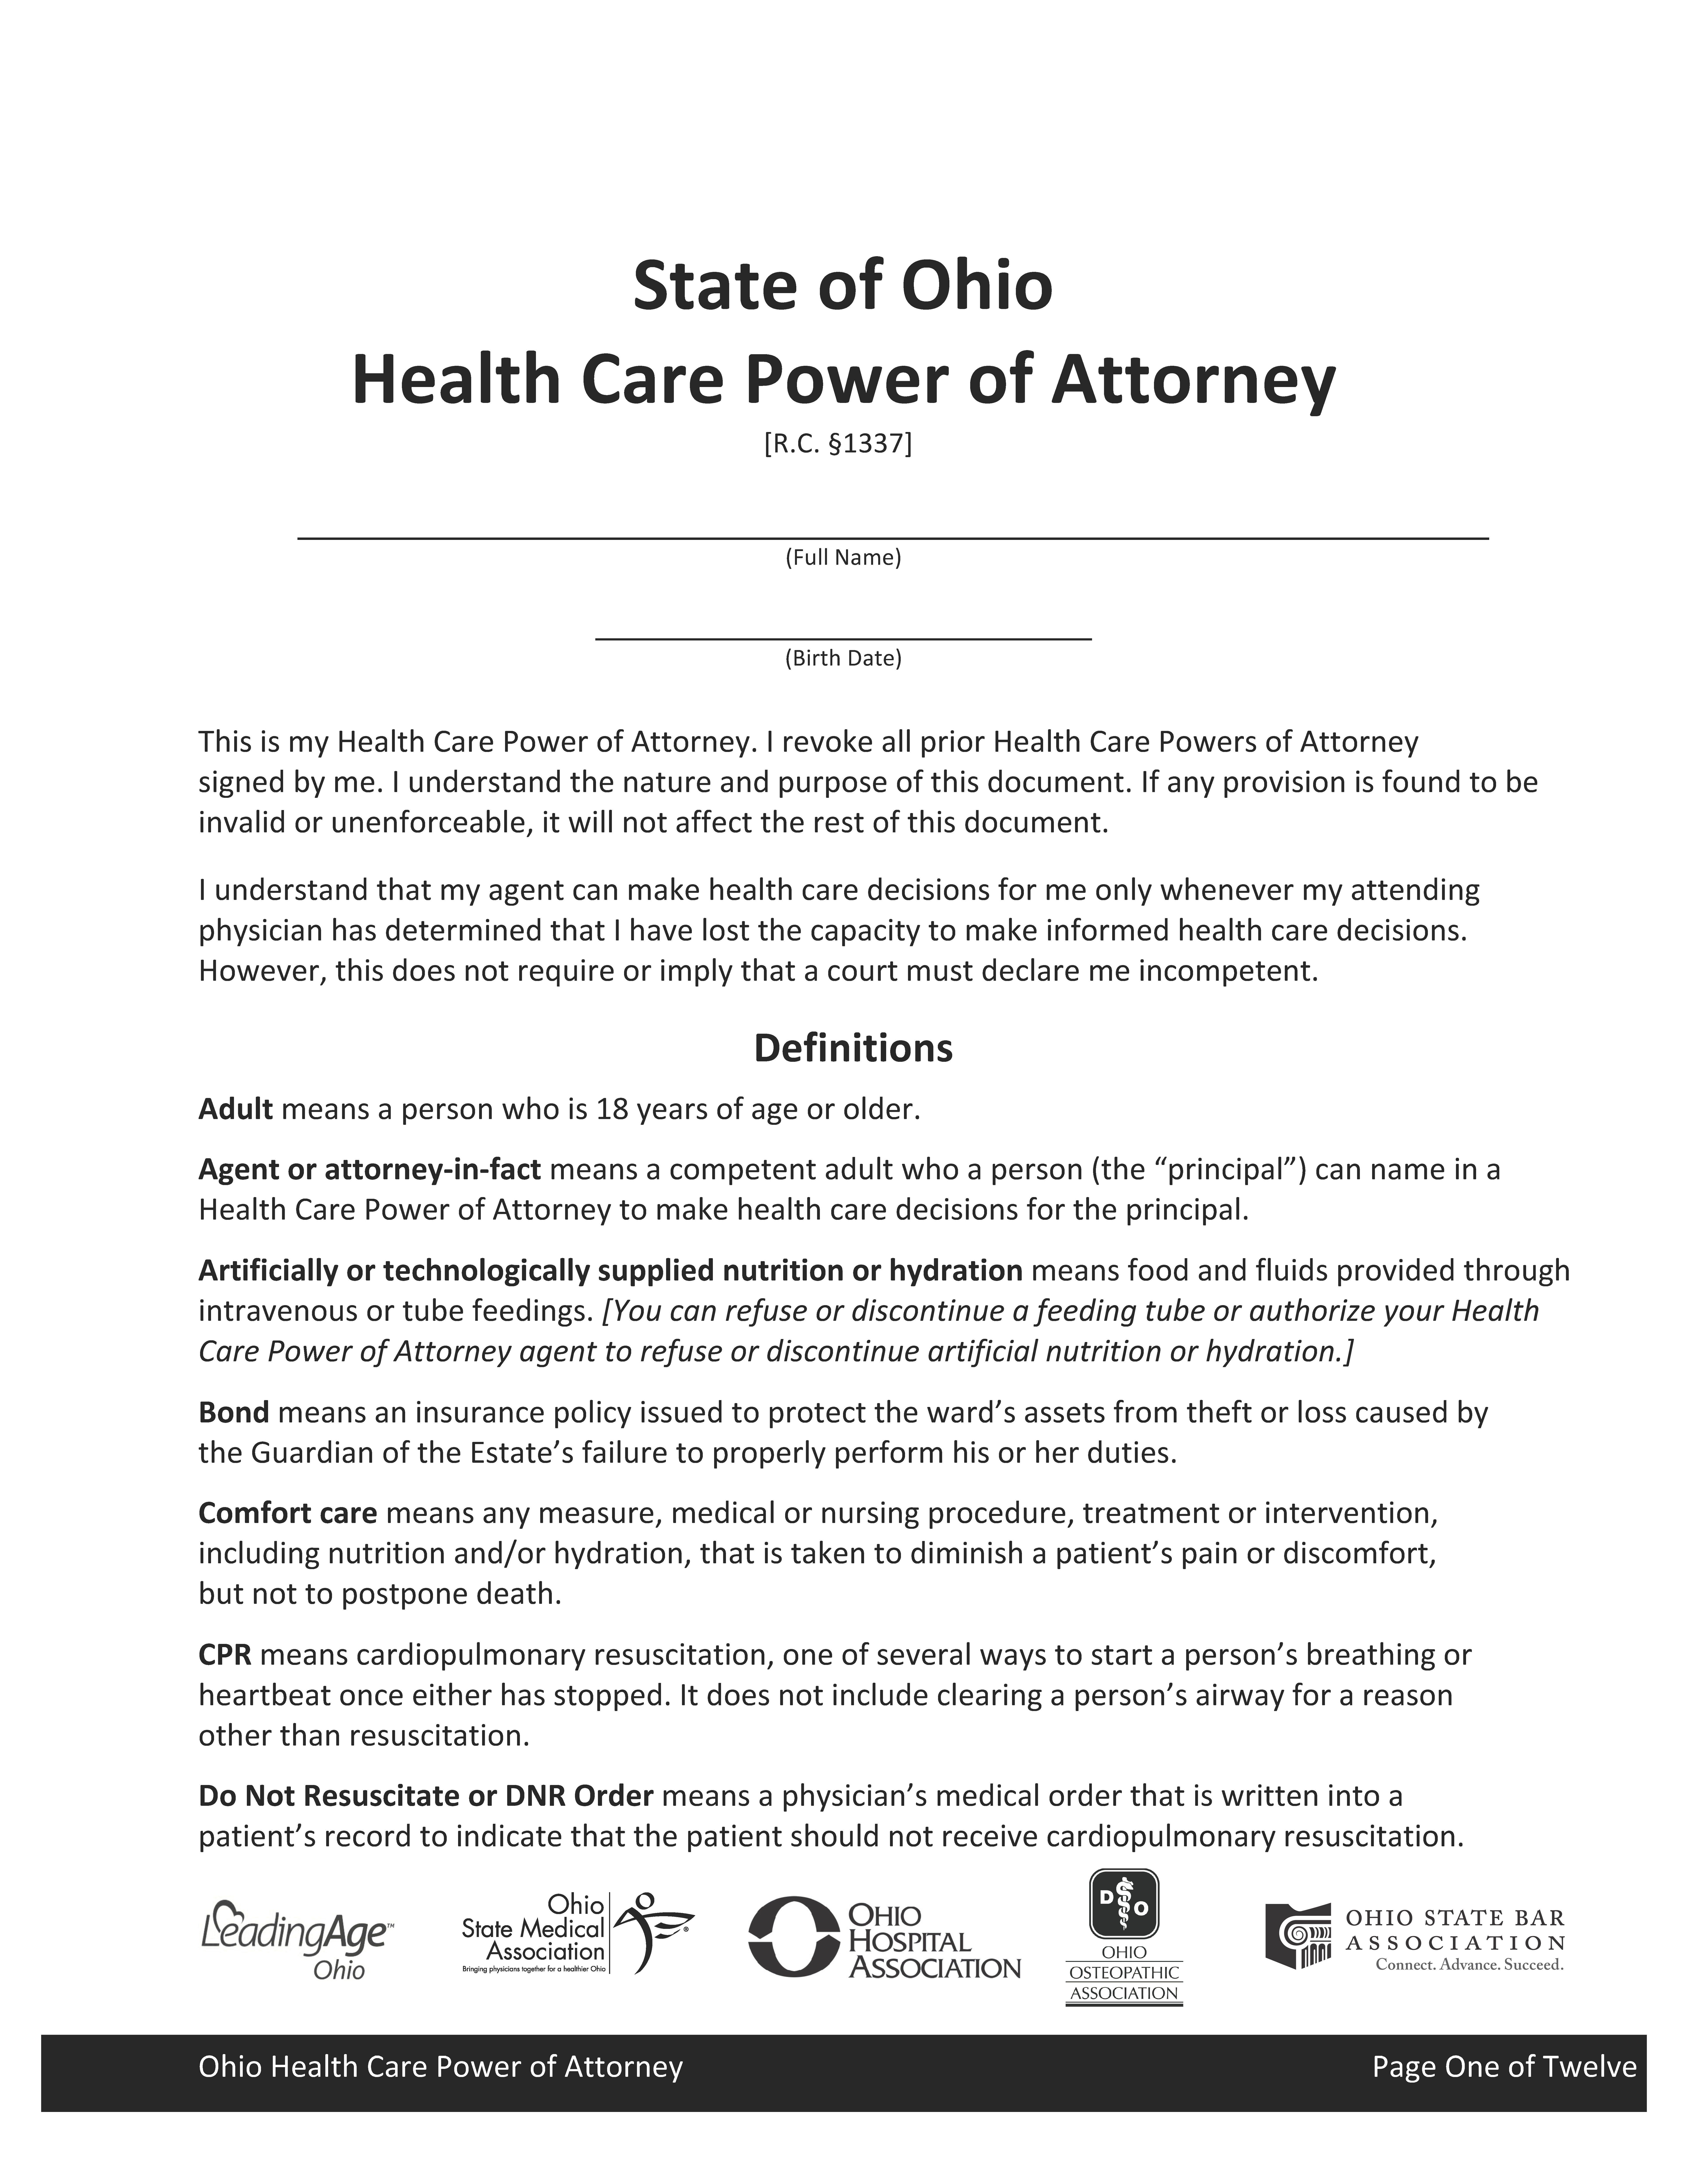 Ohio Health Care Power Of Attorney Fillable PDF Free